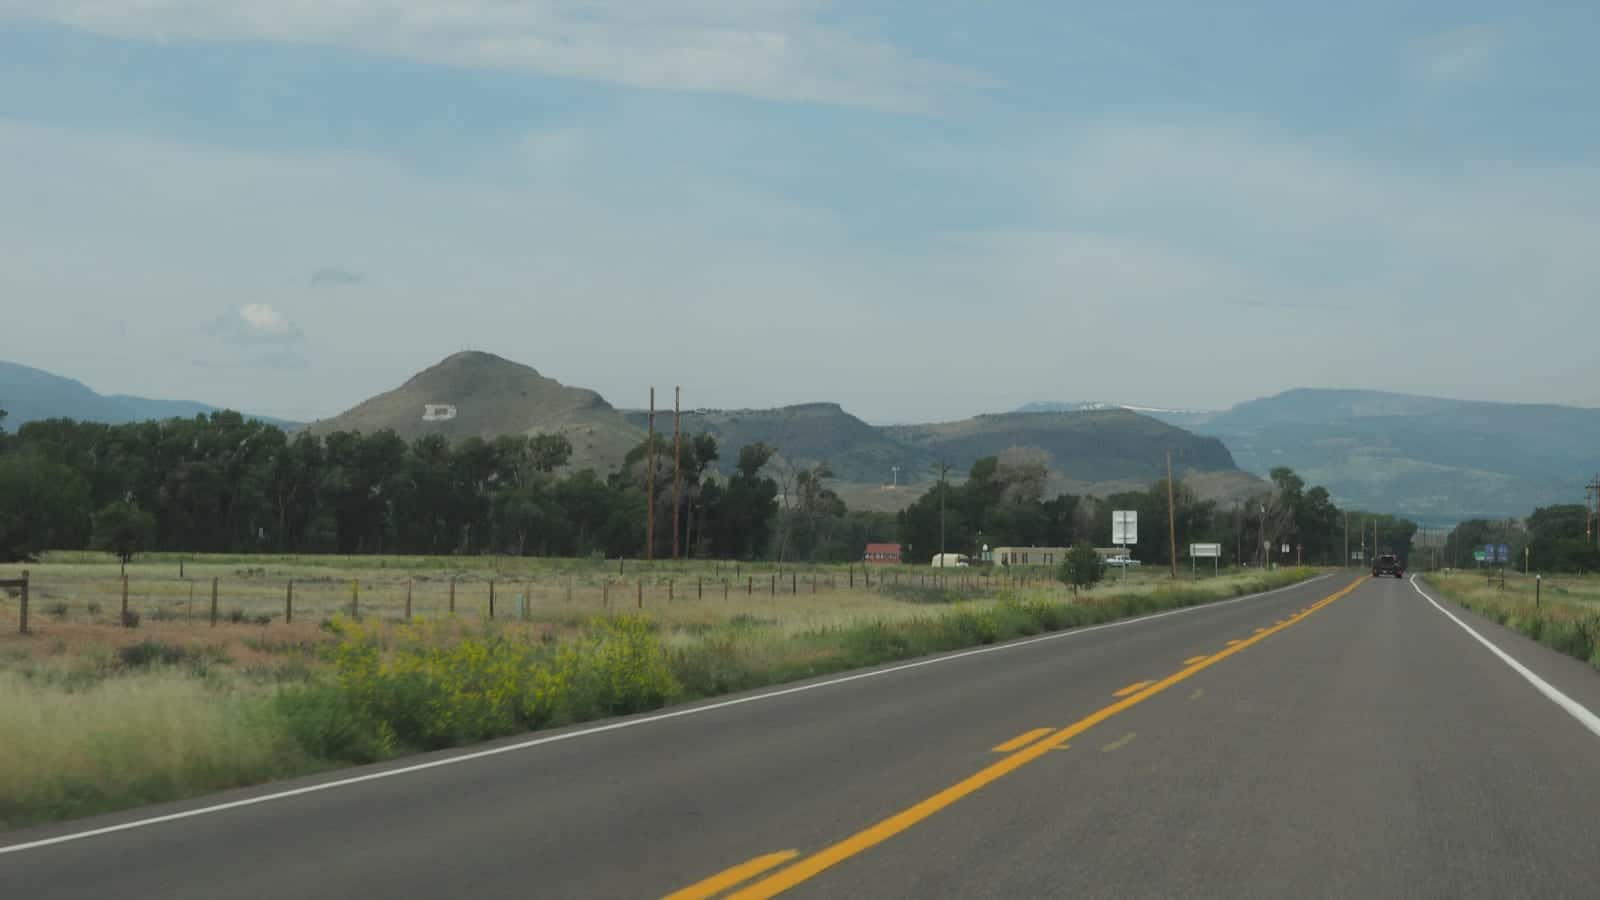 Del Norte CO D on Mountainside